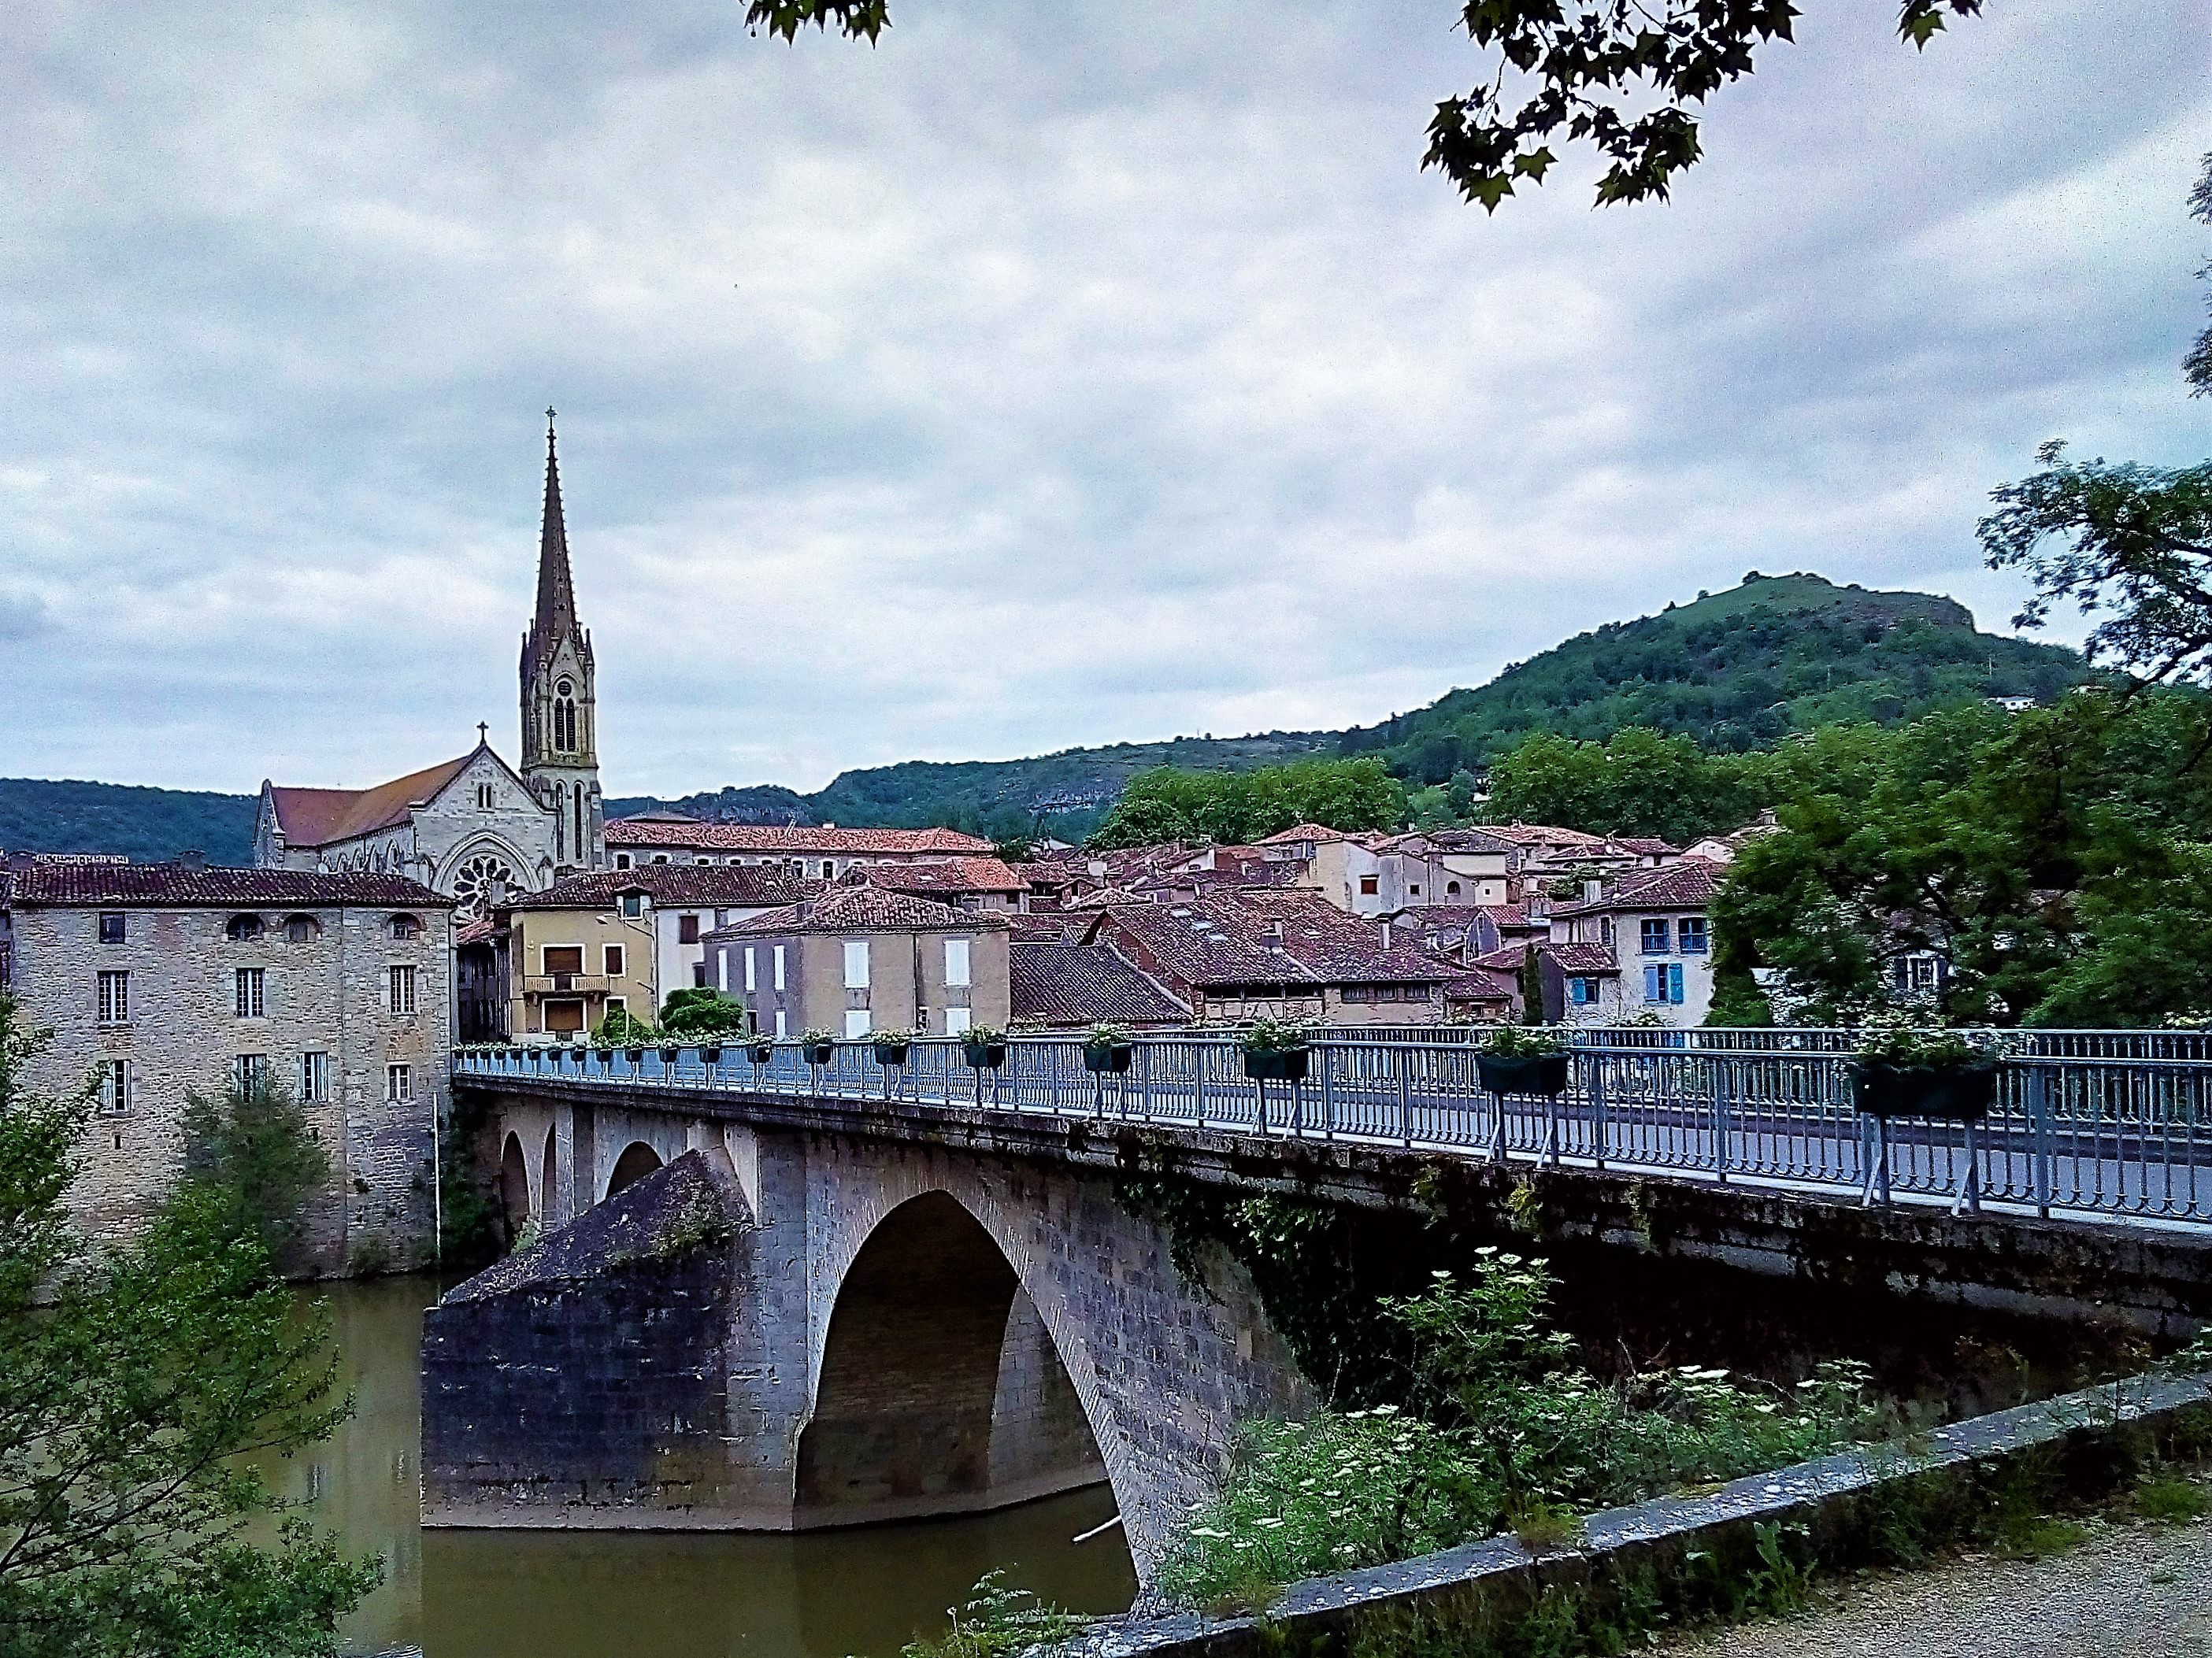 Saint-Antonin-Noble-Val